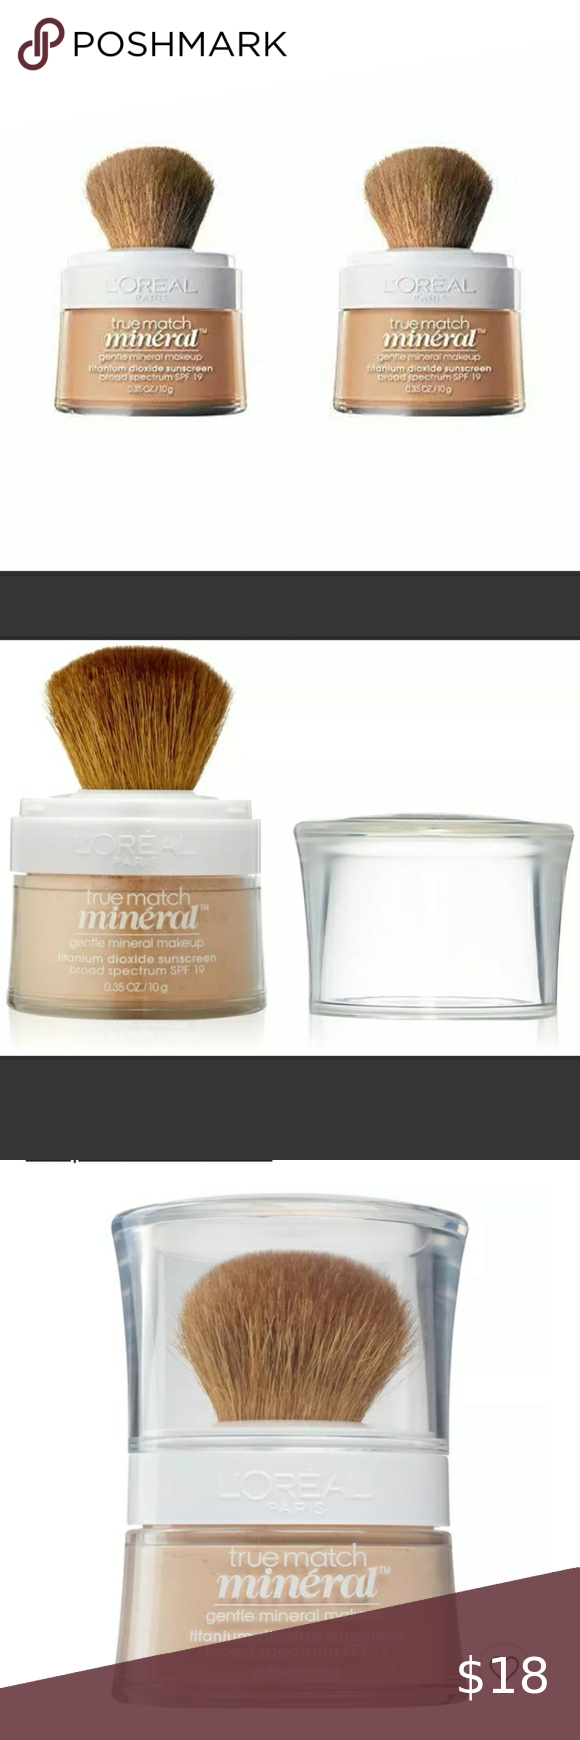 Two (2) L'Oréal Mineral Foundation Light Ivory 458 in 2020